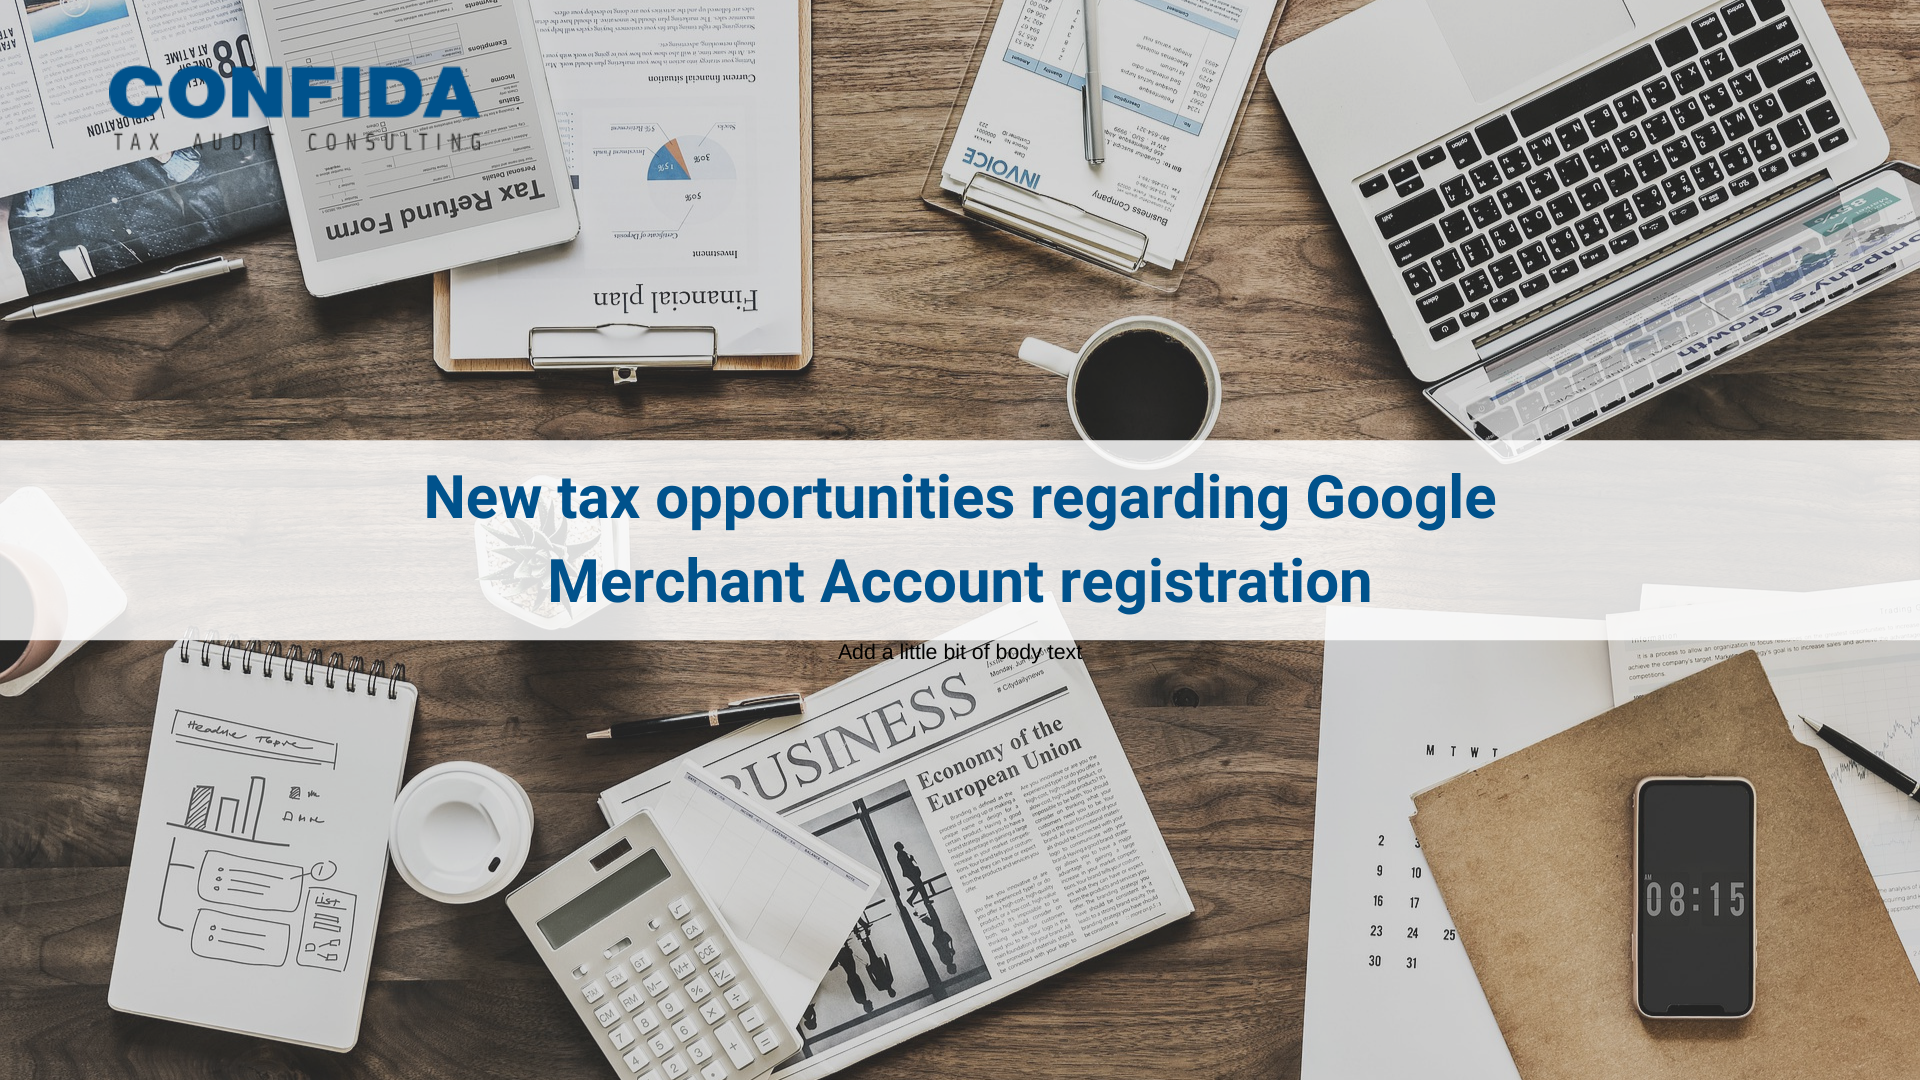 New tax opportunities regarding Google Merchant Account registration